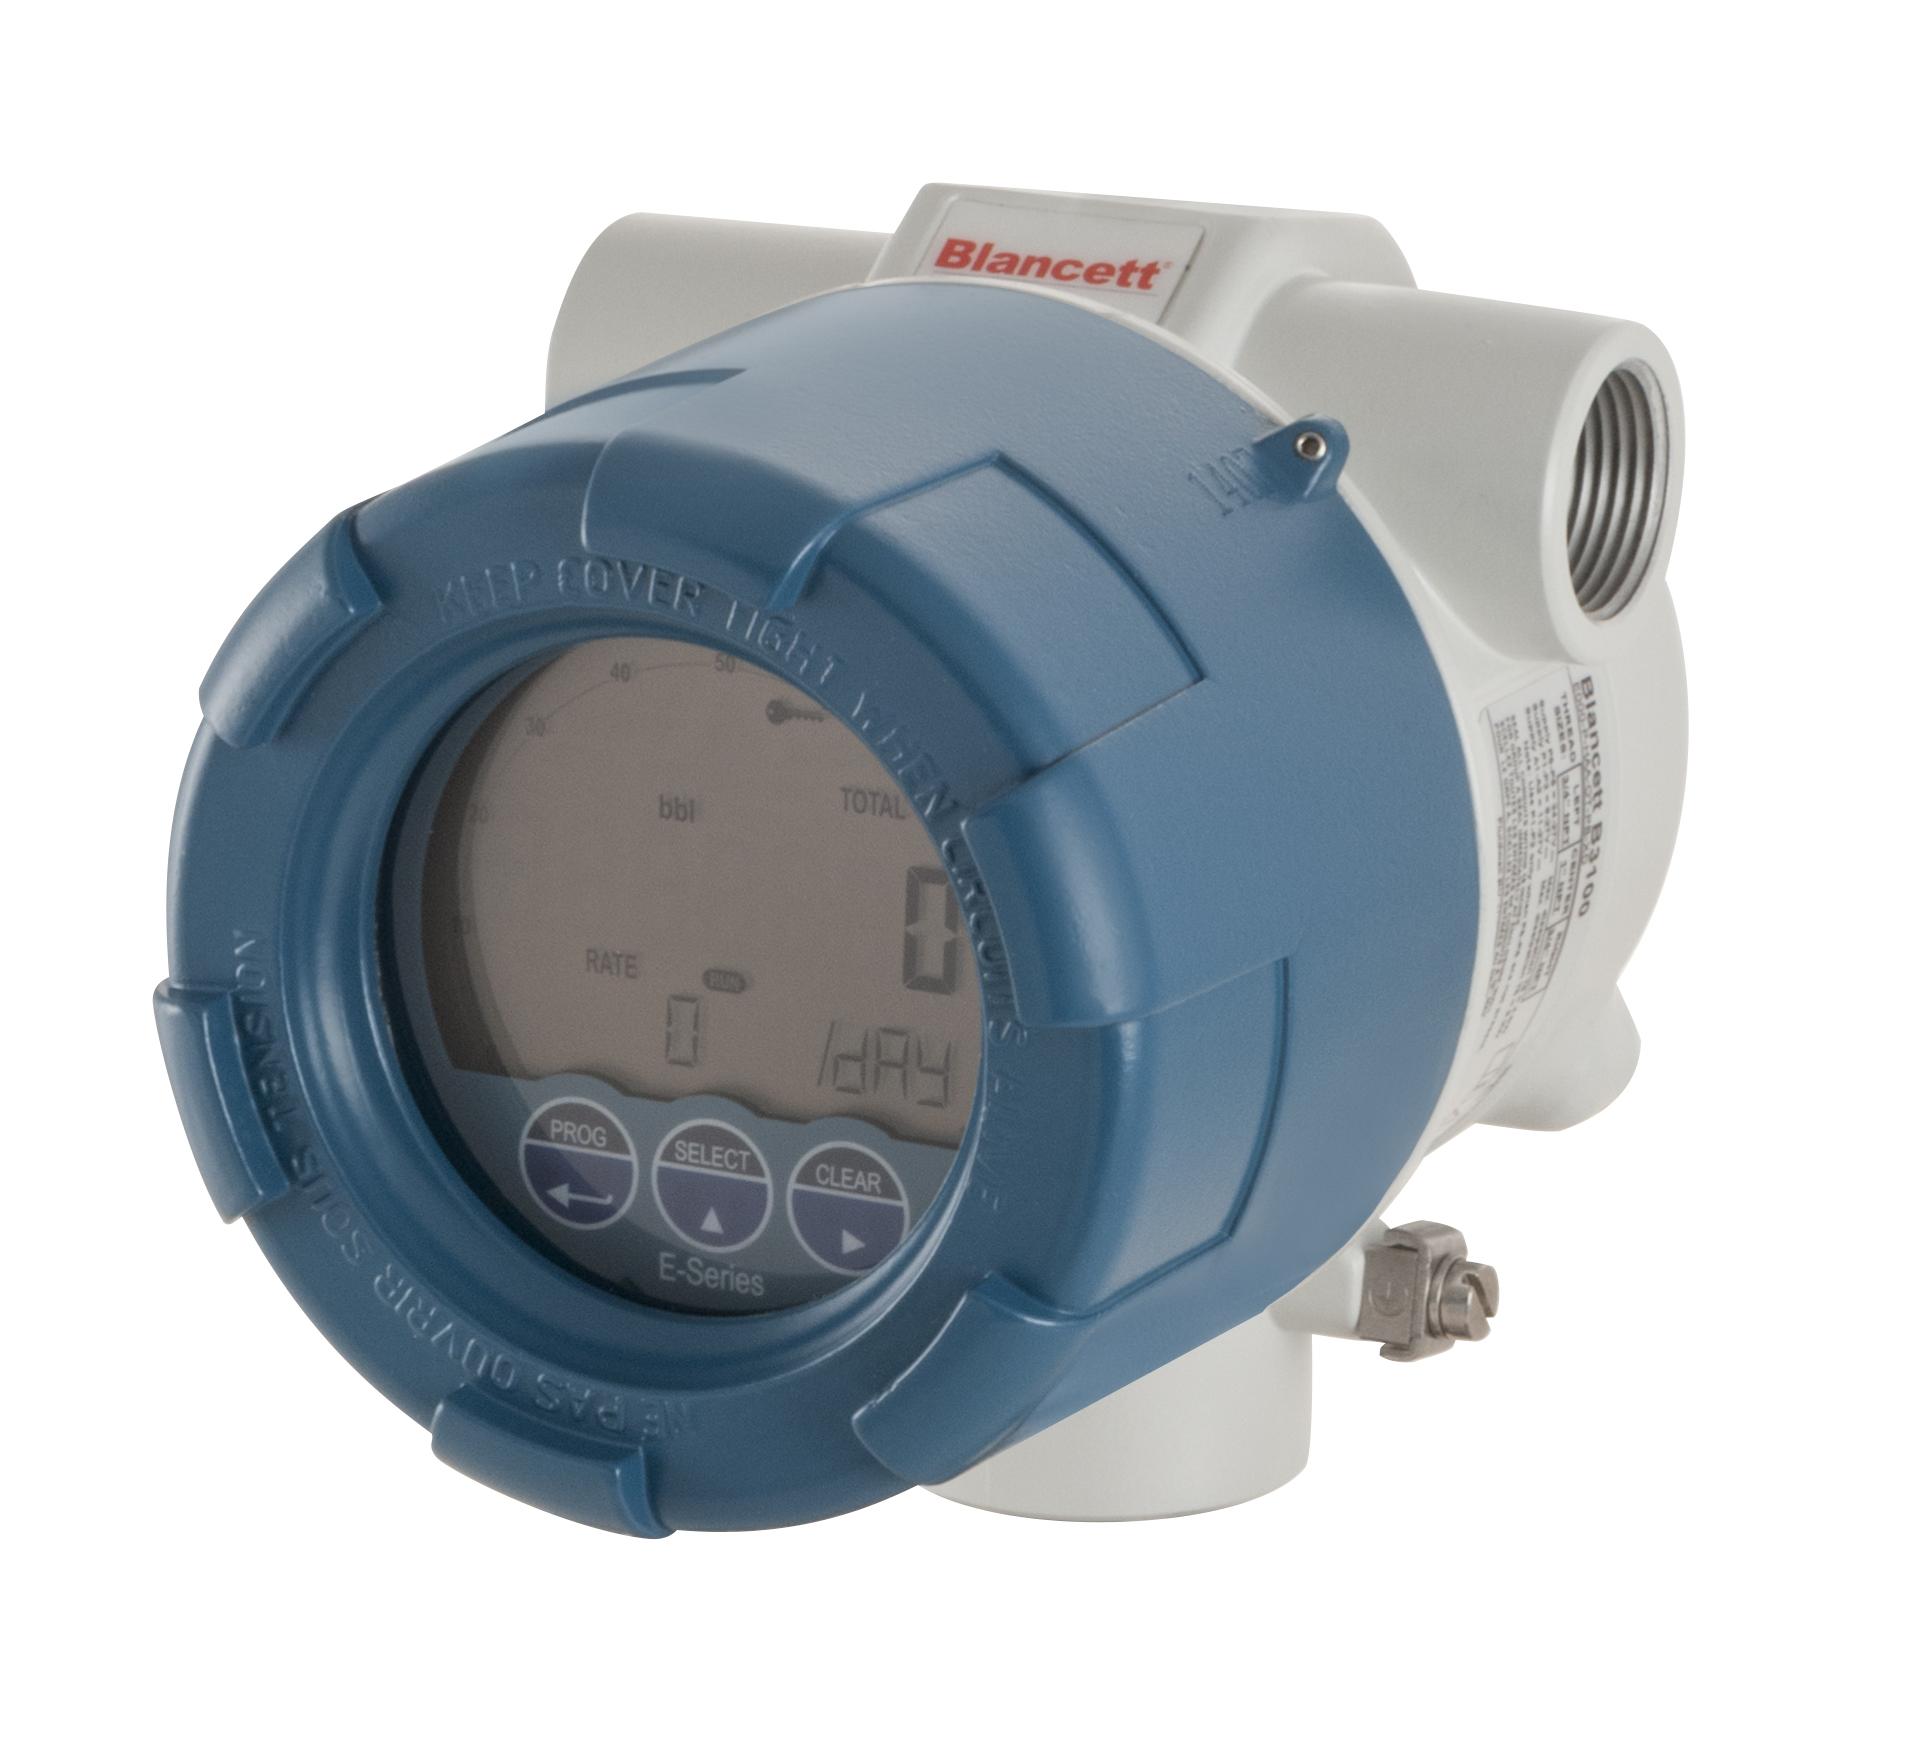 ATEX Rated Flow Monitors from Blancett